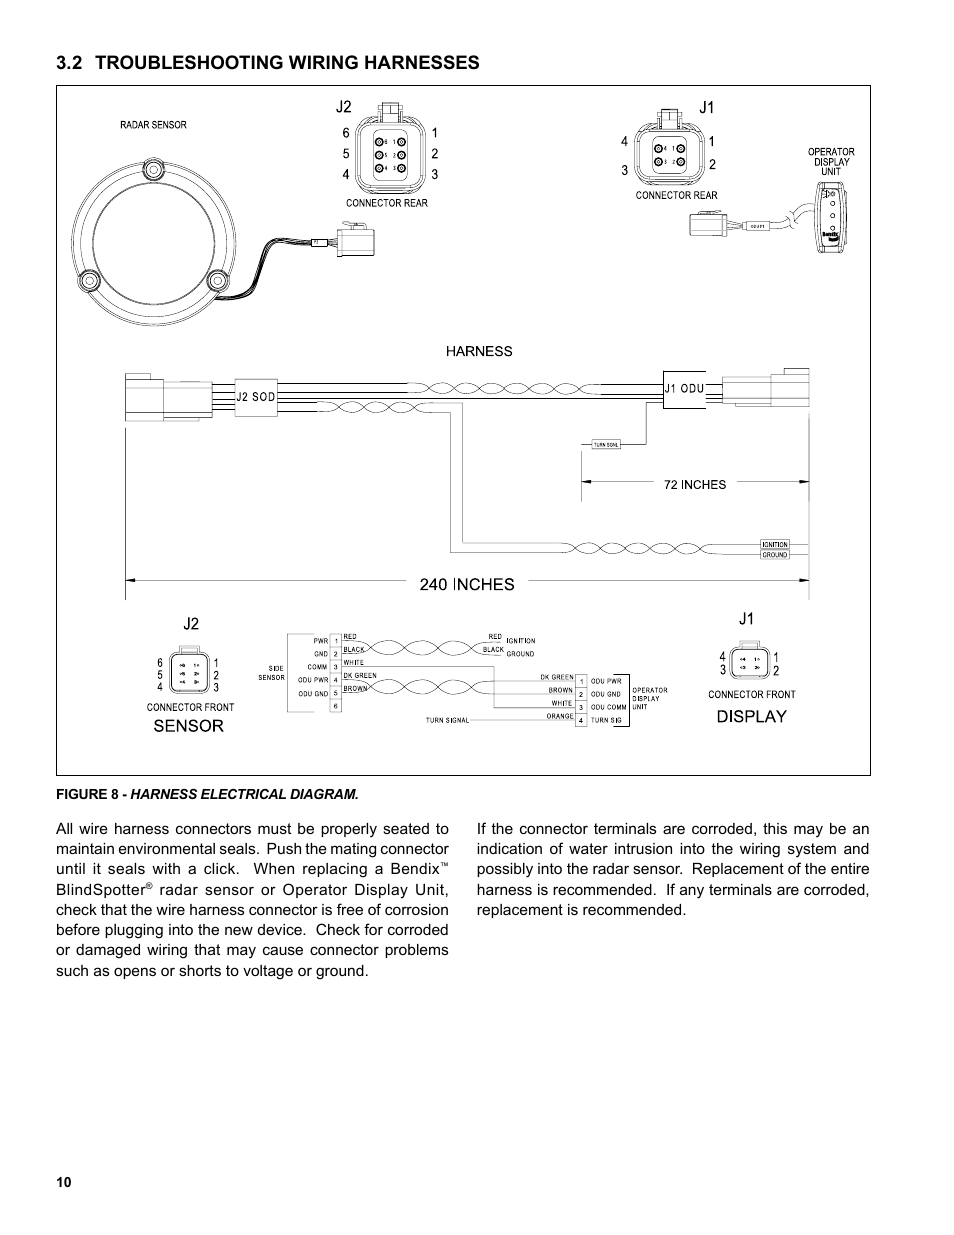 10 Awg Wire Free Download Wiring Diagrams Pictures Wiring Diagrams